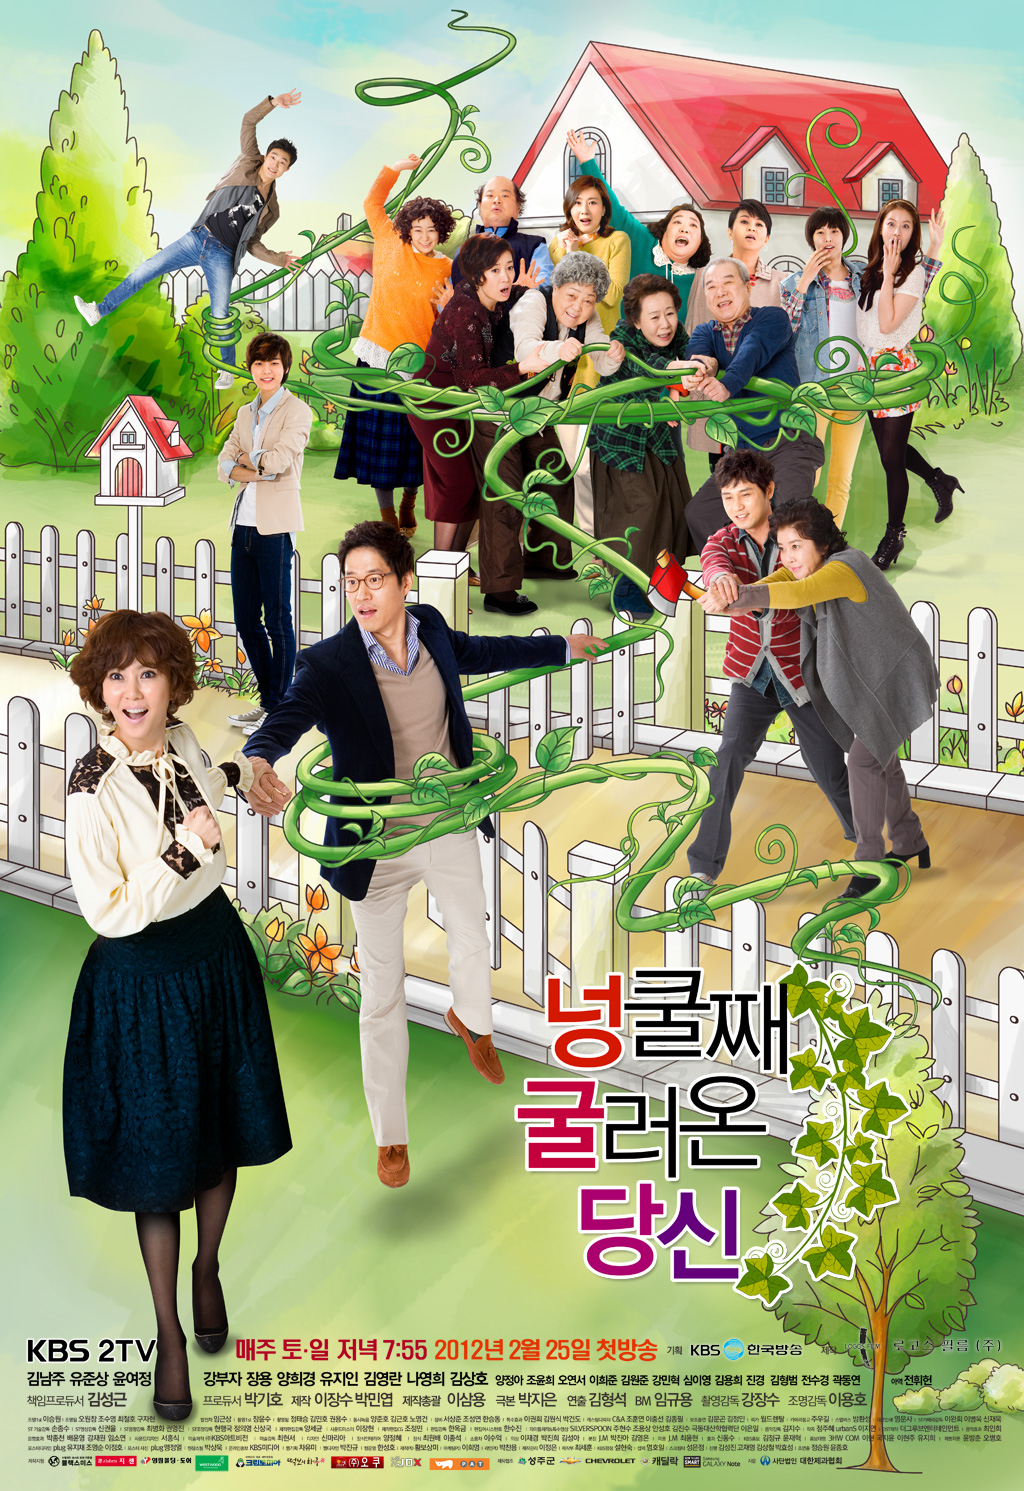 http://img.kbs.co.kr/cms/drama/nungcool/images/poster02.jpg